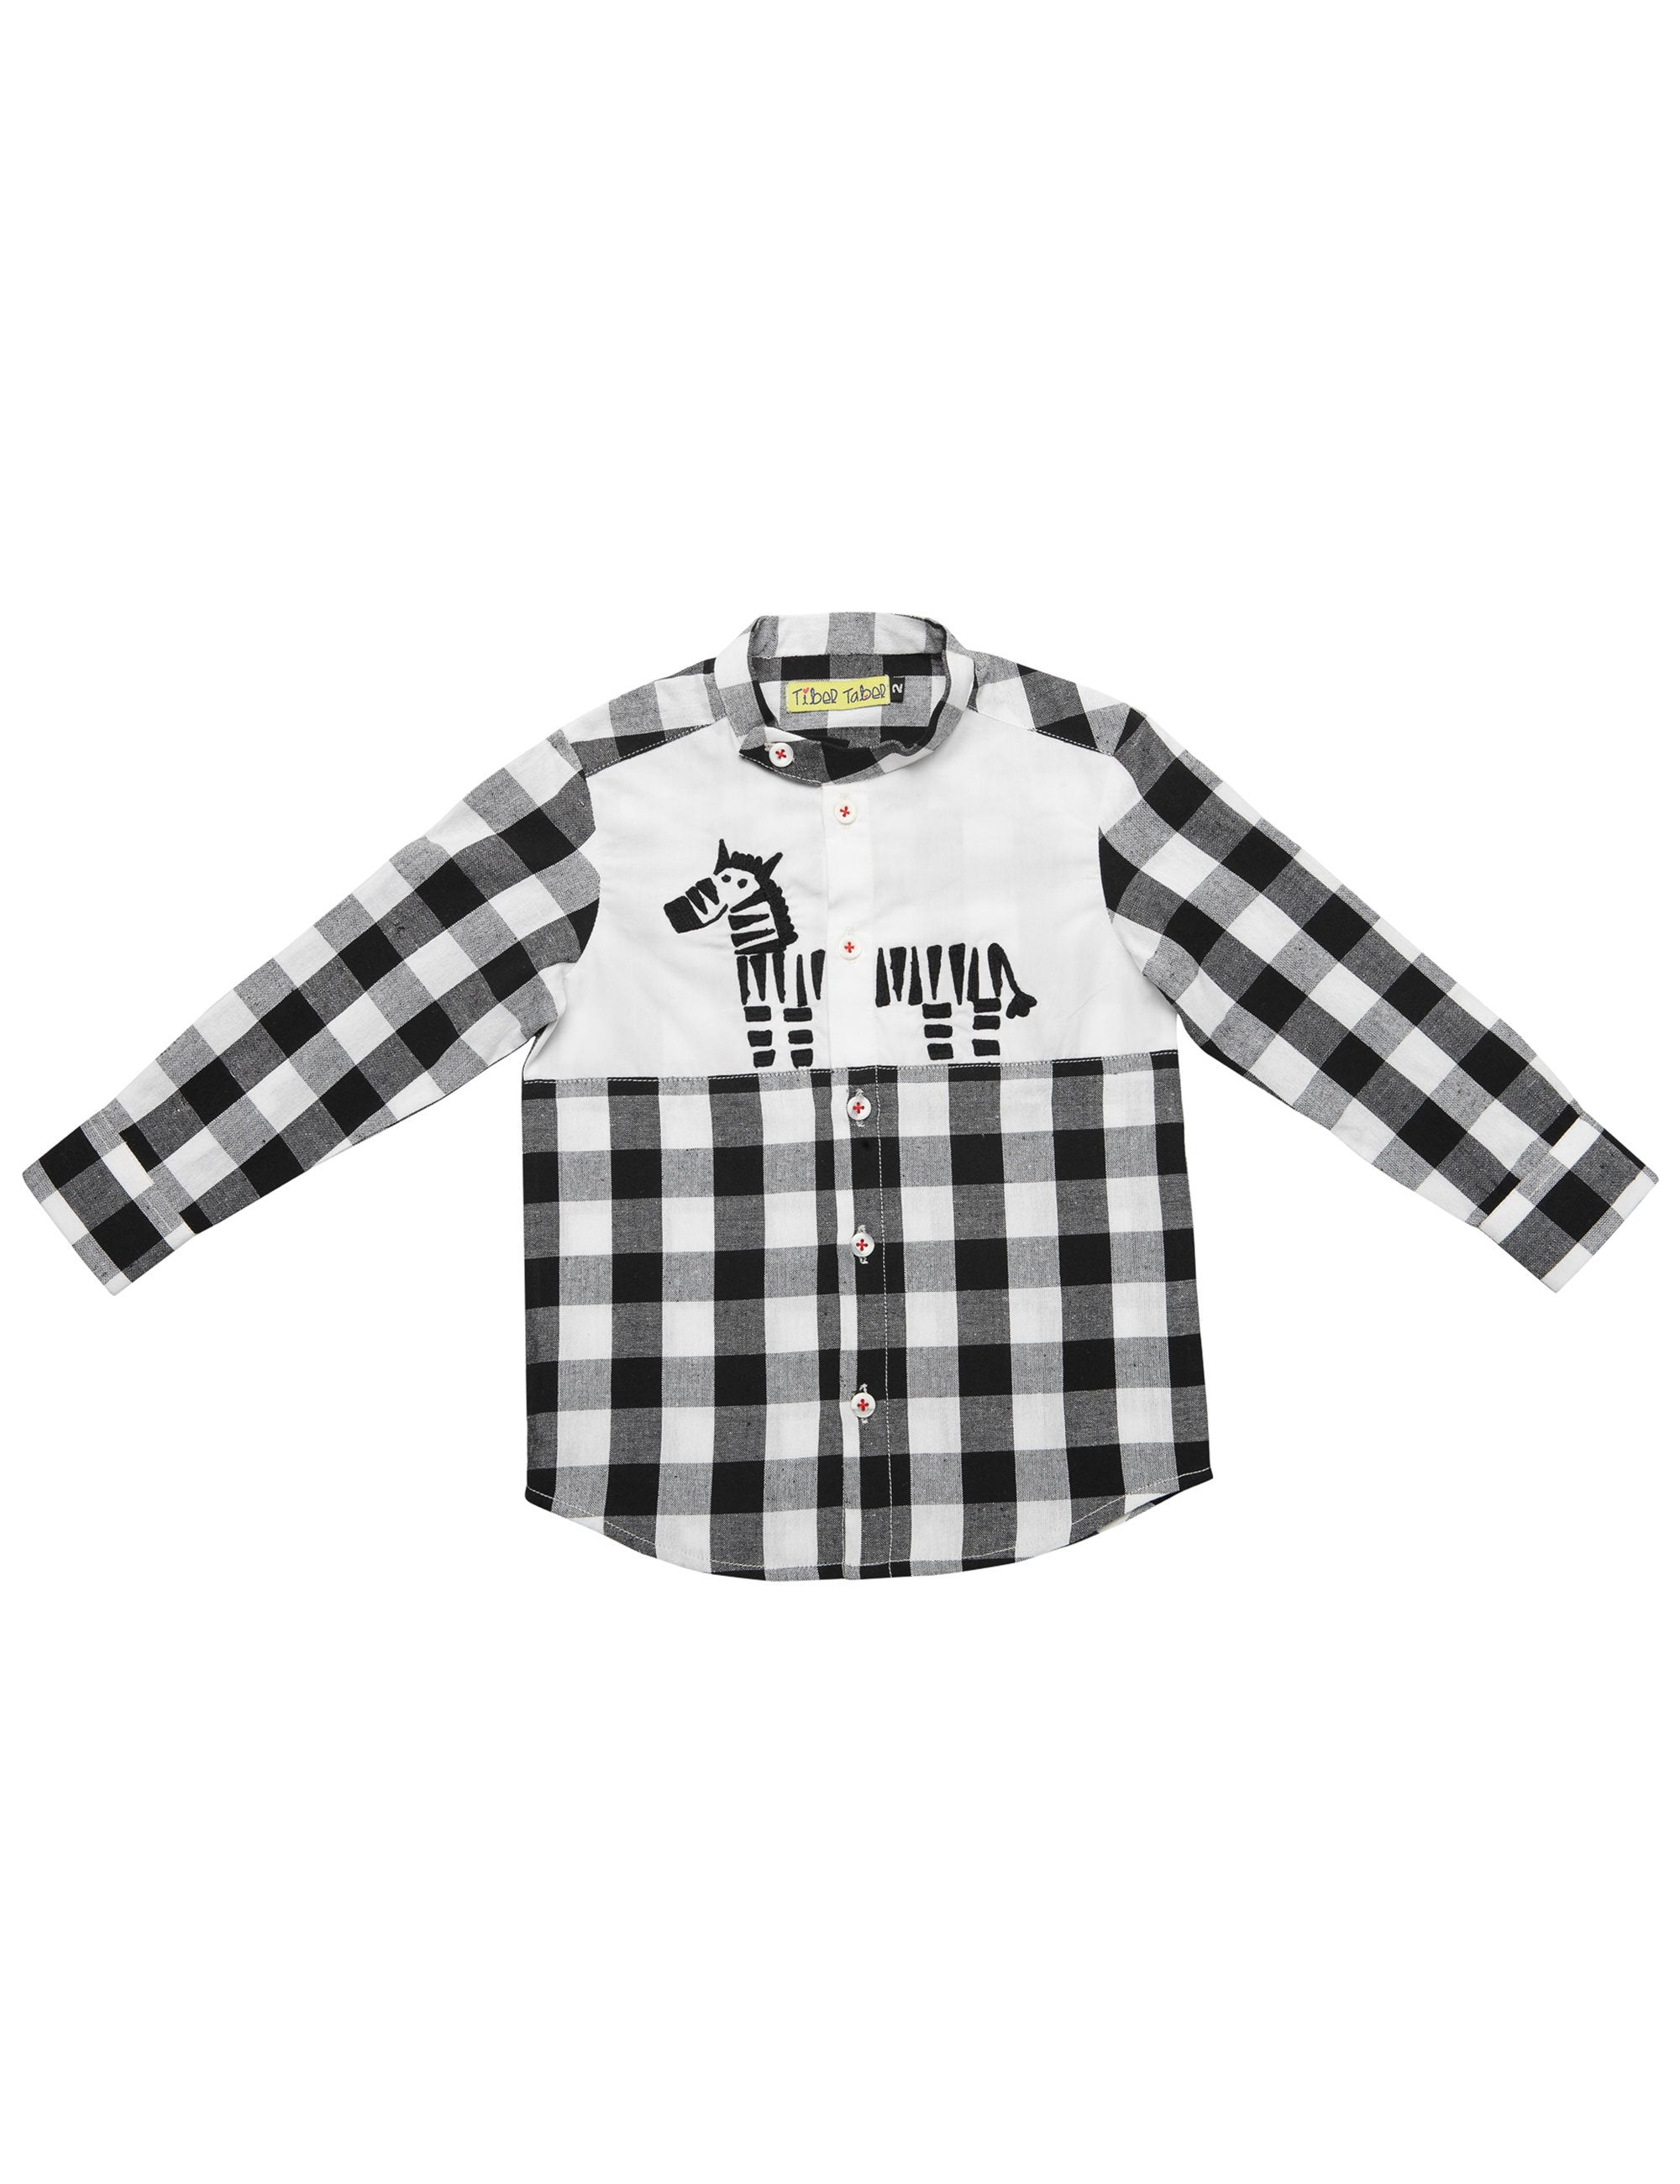 Checks Shirt in Black & White Colour for Boys